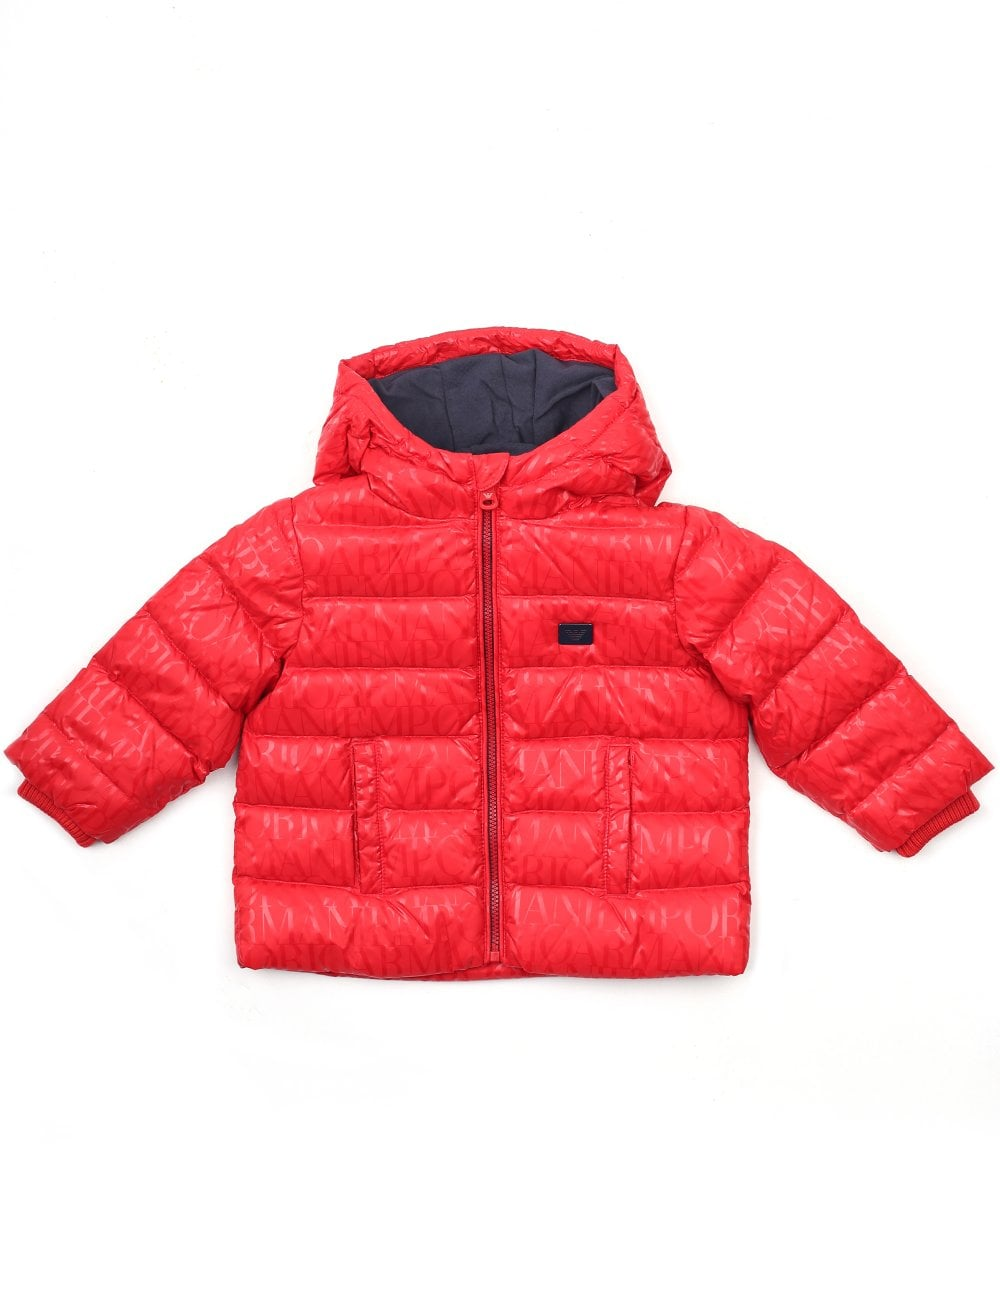 6e0ed629f9eb Armani Baby Boys Zip Through Hooded Down Jacket